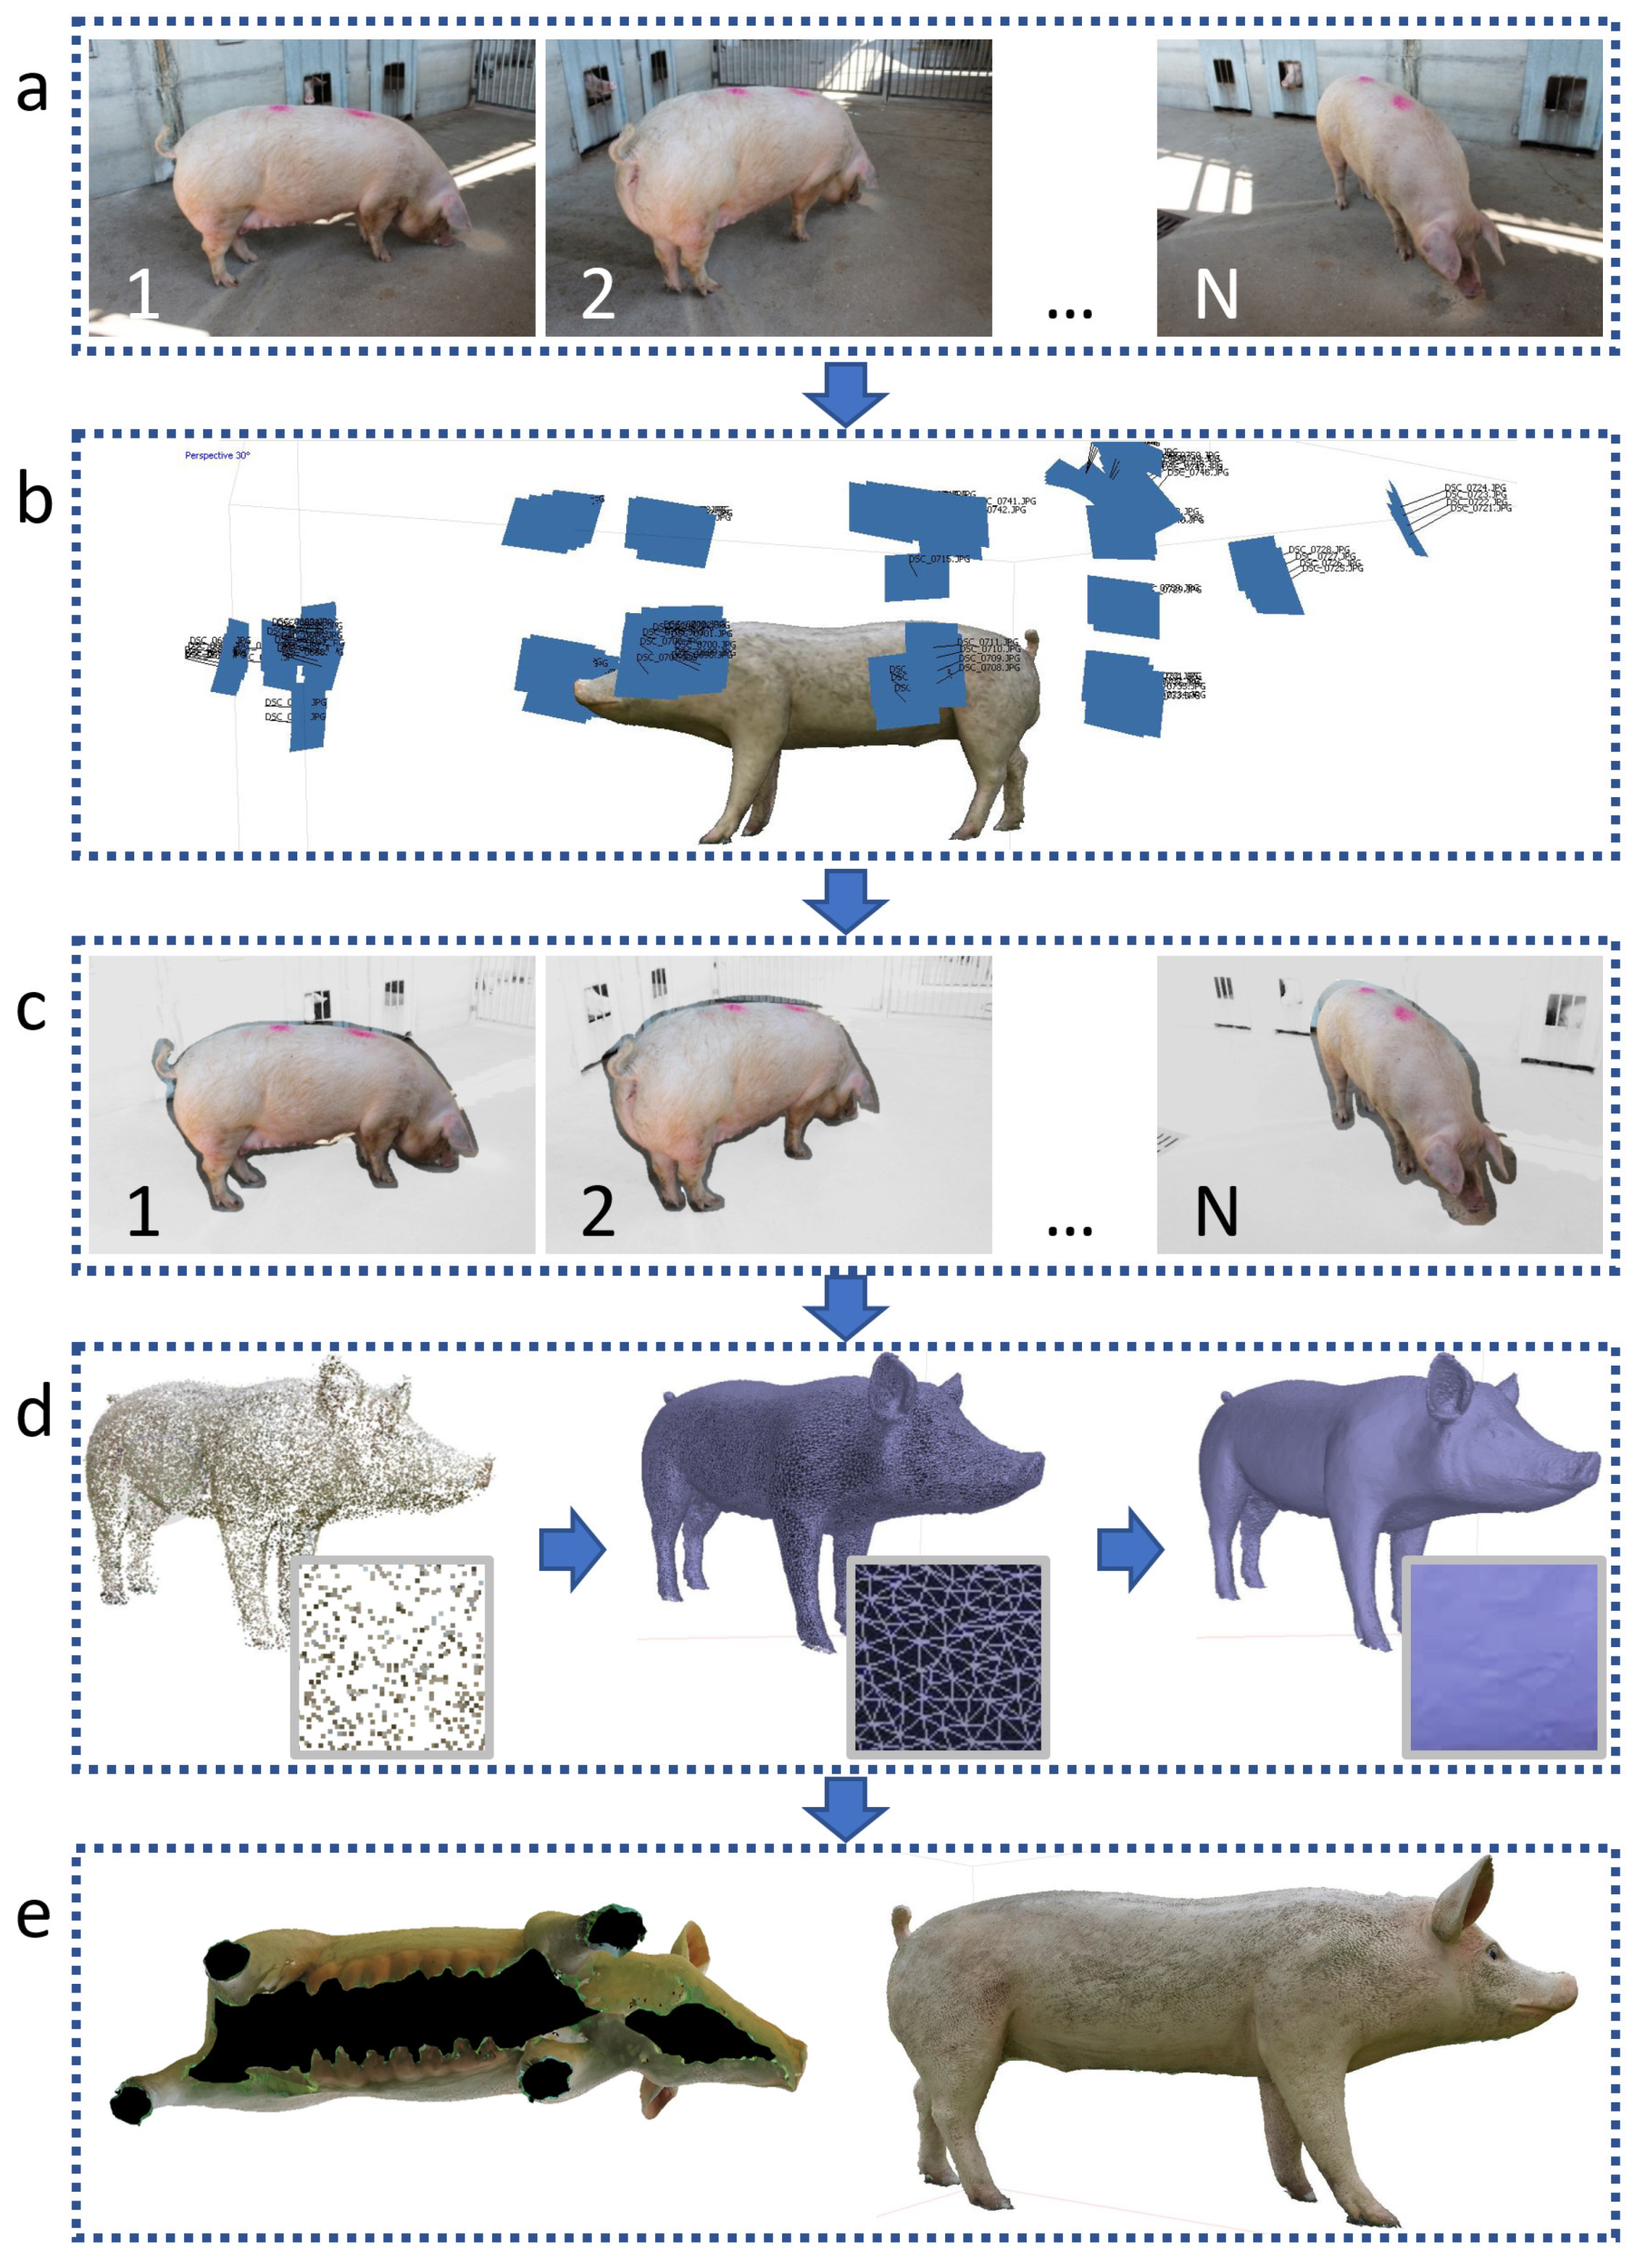 560+Sensors   Free Full Text   On Barn Pig Weight Estimation Based on ...